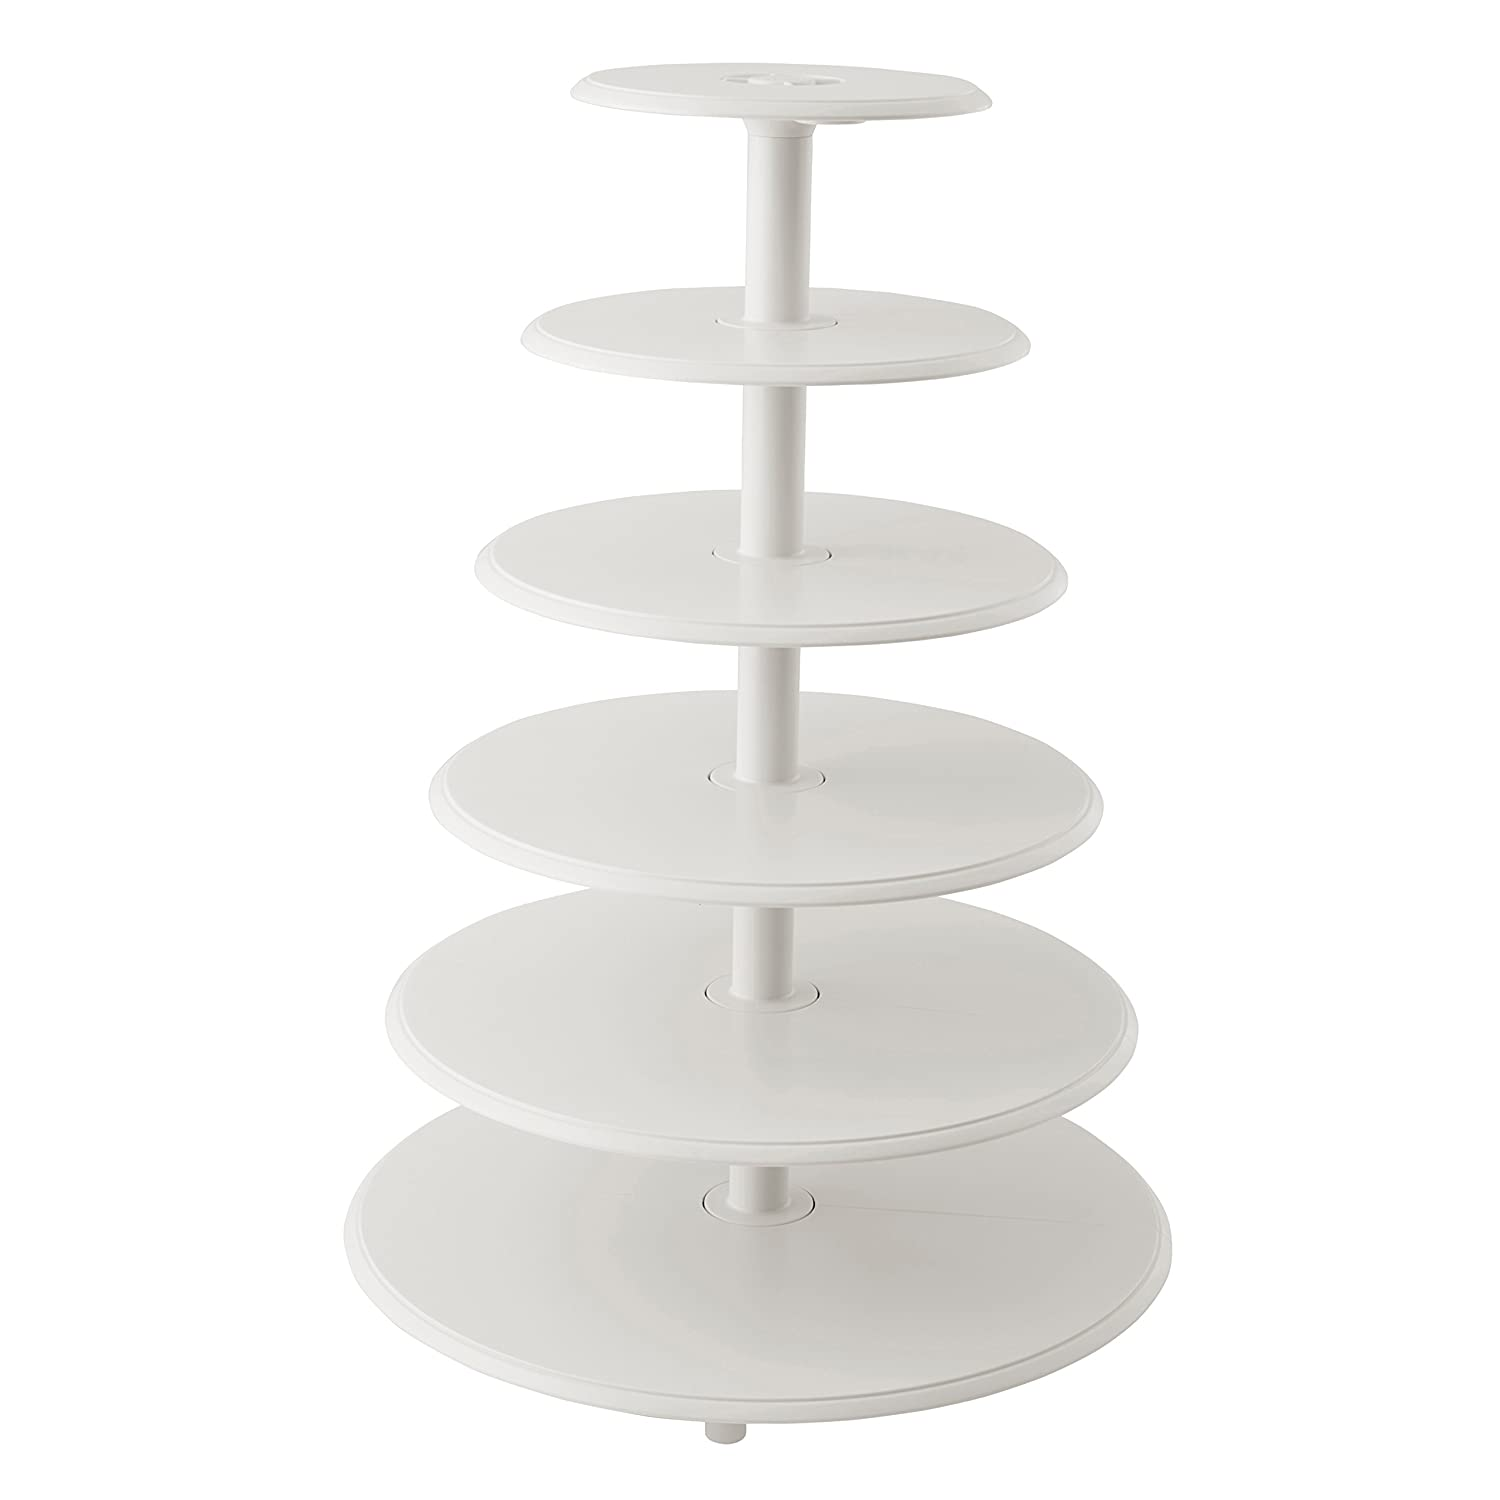 Wilton Towering Tiers Cupcake and Dessert Stand, Great for Displaying Cupcakes, Danishes and Your Favorite Hors d'Oeuvres, White, 3-foot, 28-Piece